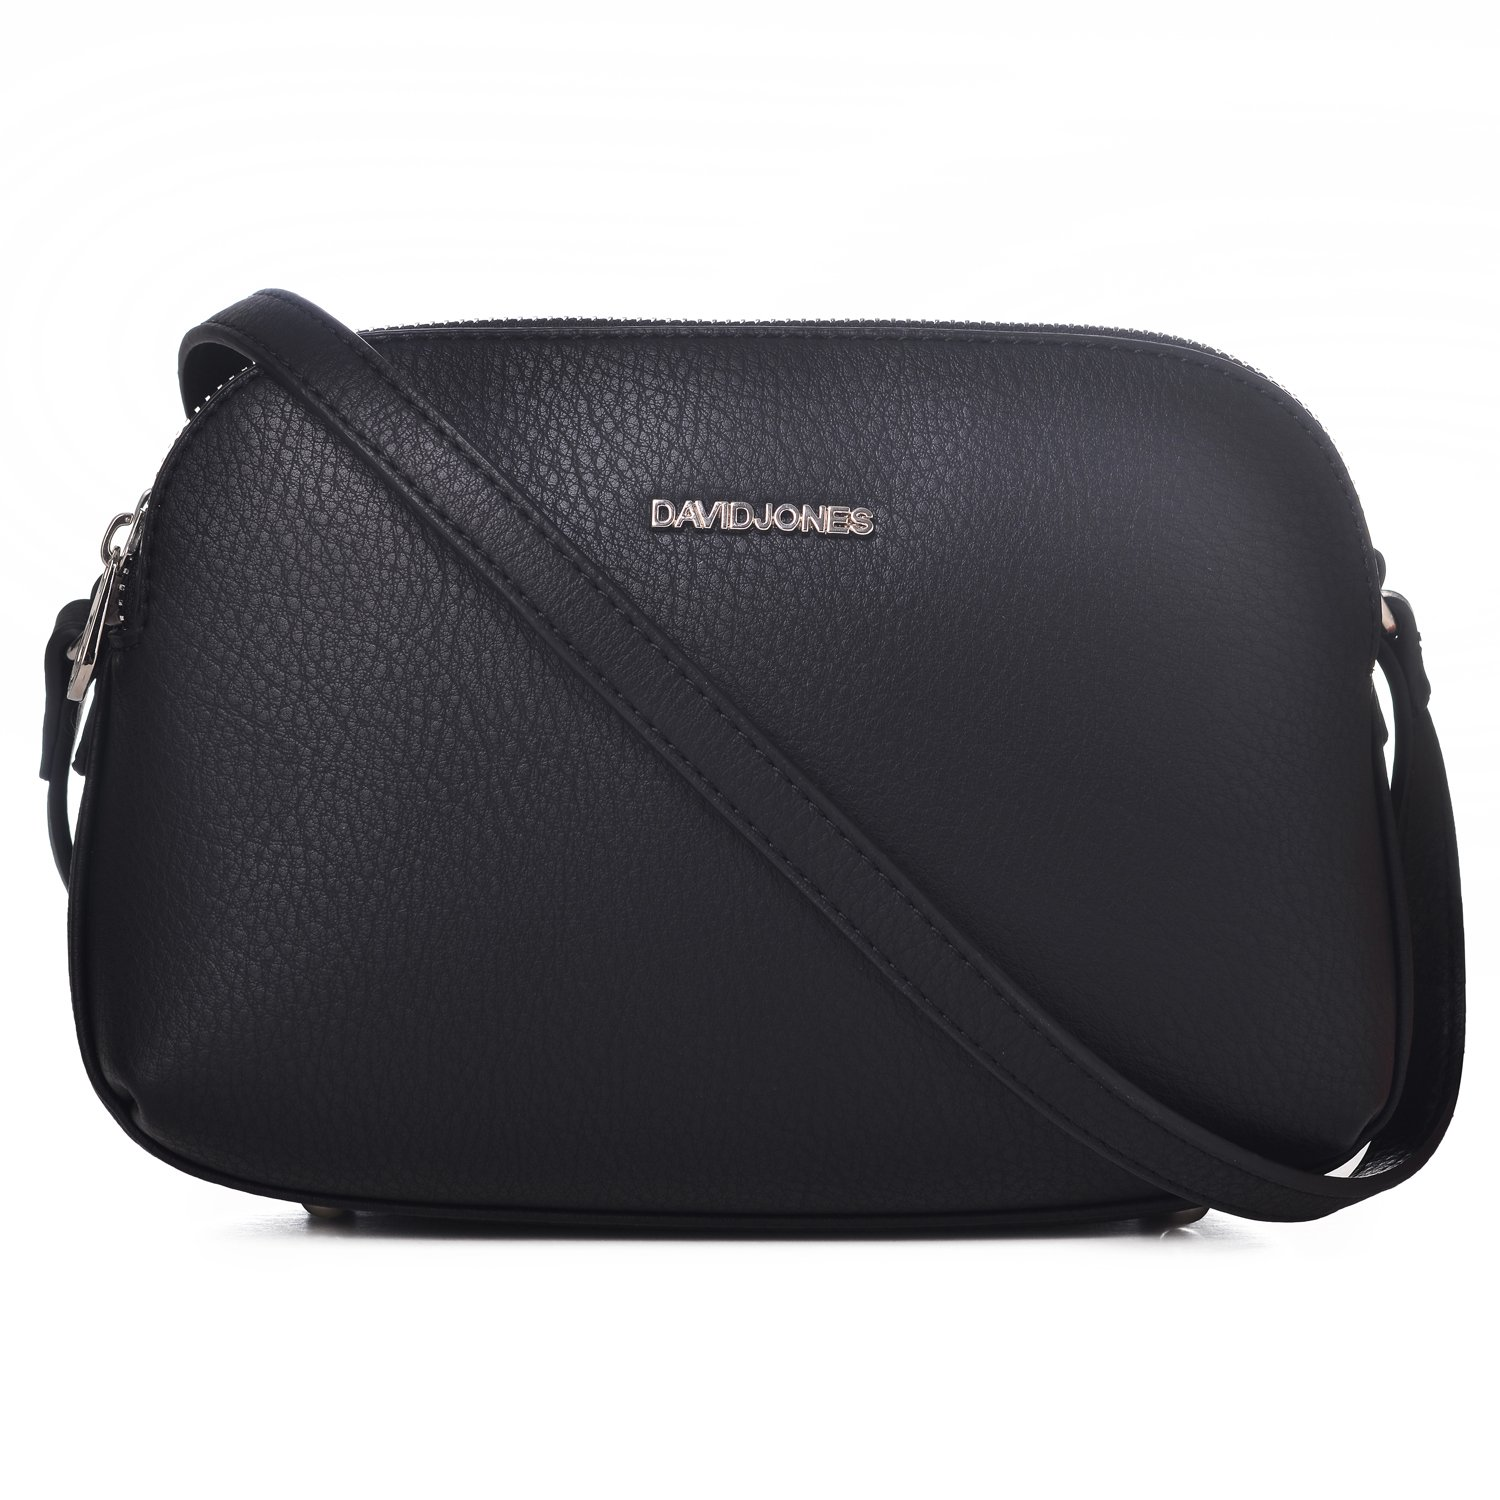 8582e877ae31 DAVID - JONES INTERNATIONAL Womens Black Leather Crossbody Saddle Purse  Designer Multi Zipper Handbags  Handbags  Amazon.com